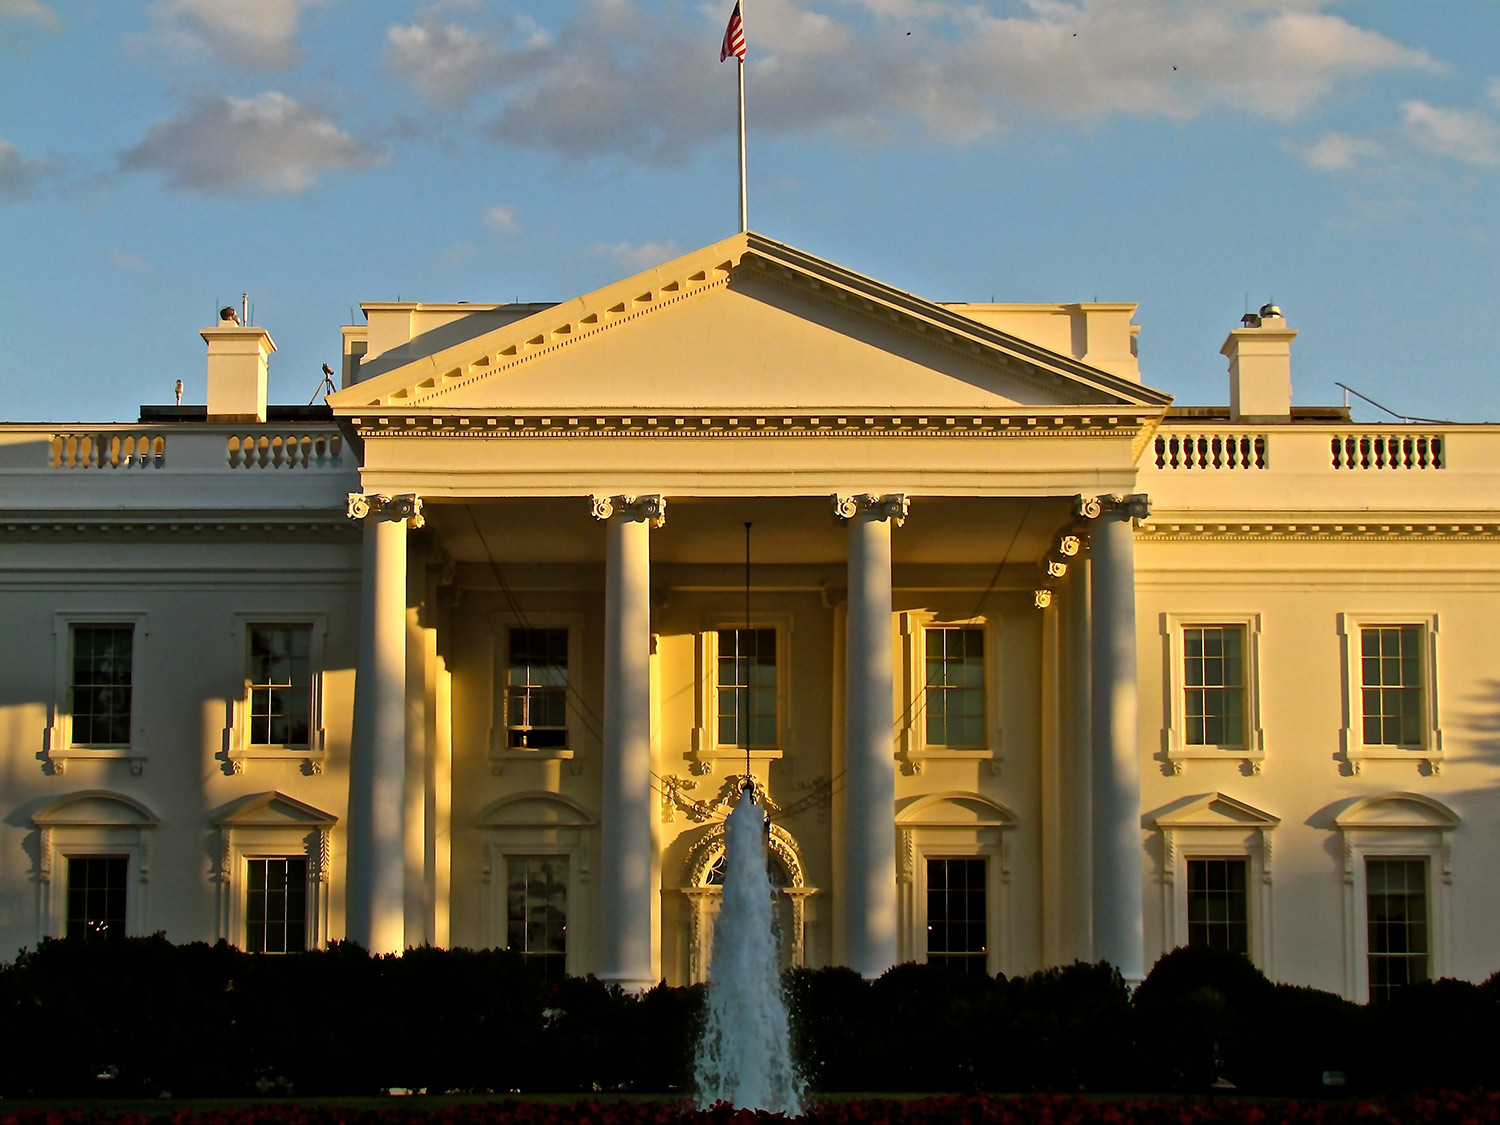 The north facade of the White House at sunrise.